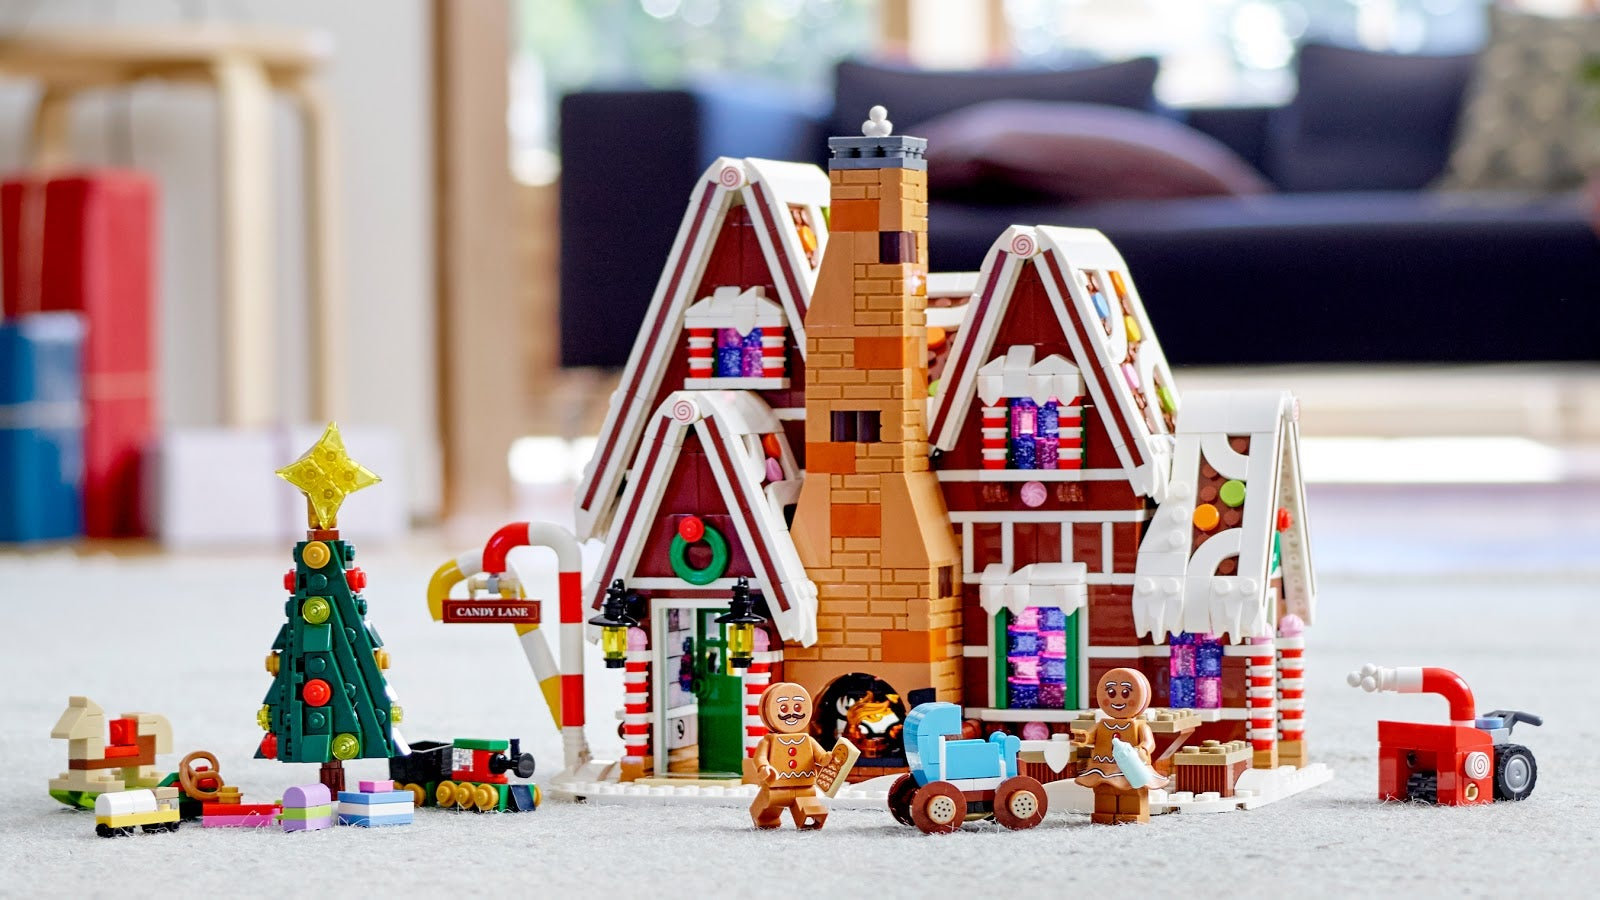 Lego's Gingerbread House Holds Disturbing Secrets